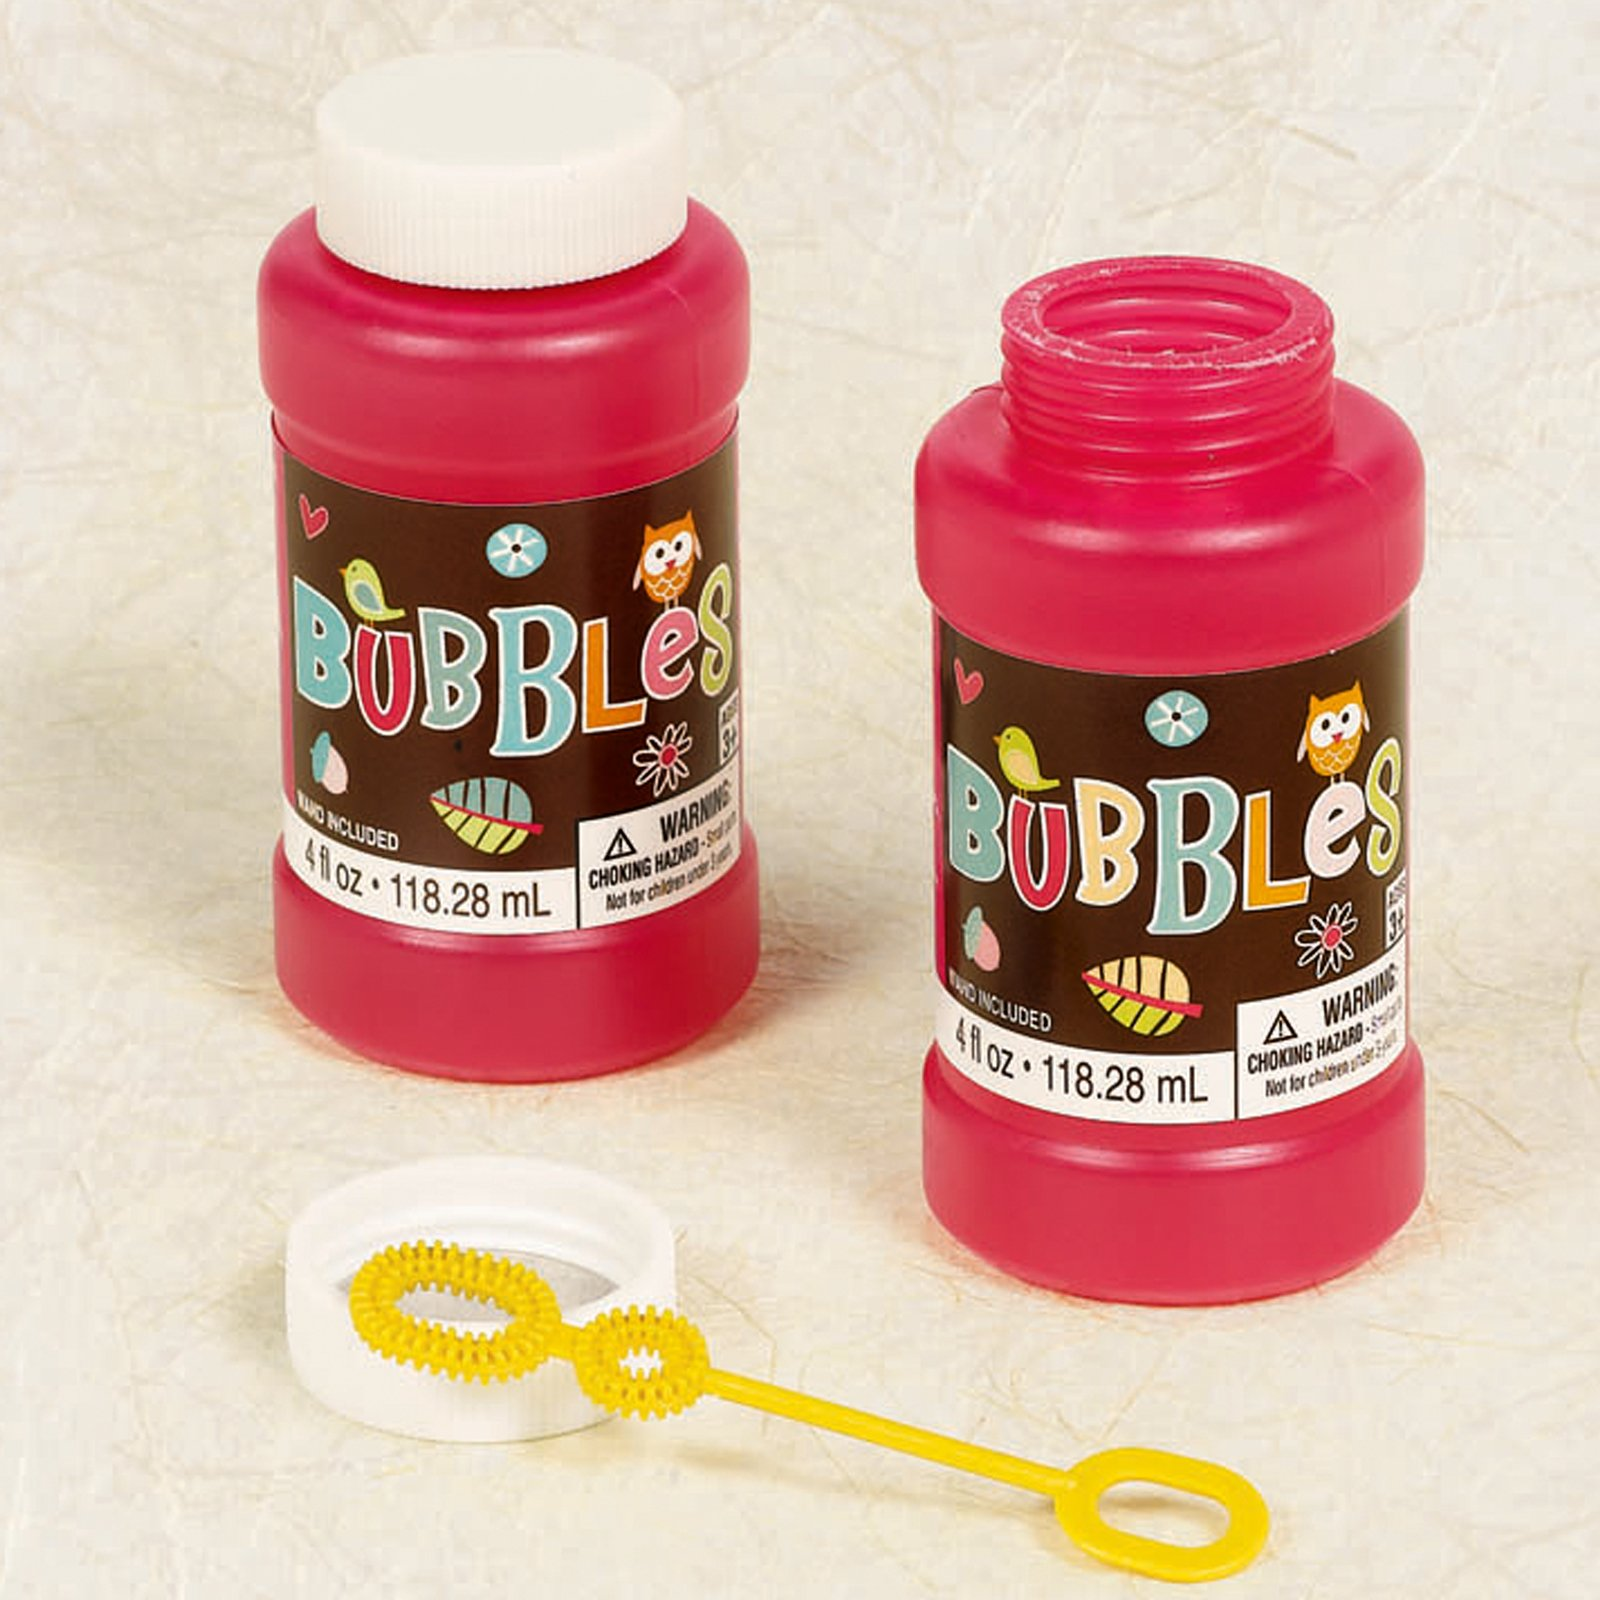 Hippie Chick Bubble Bottle (1 count)